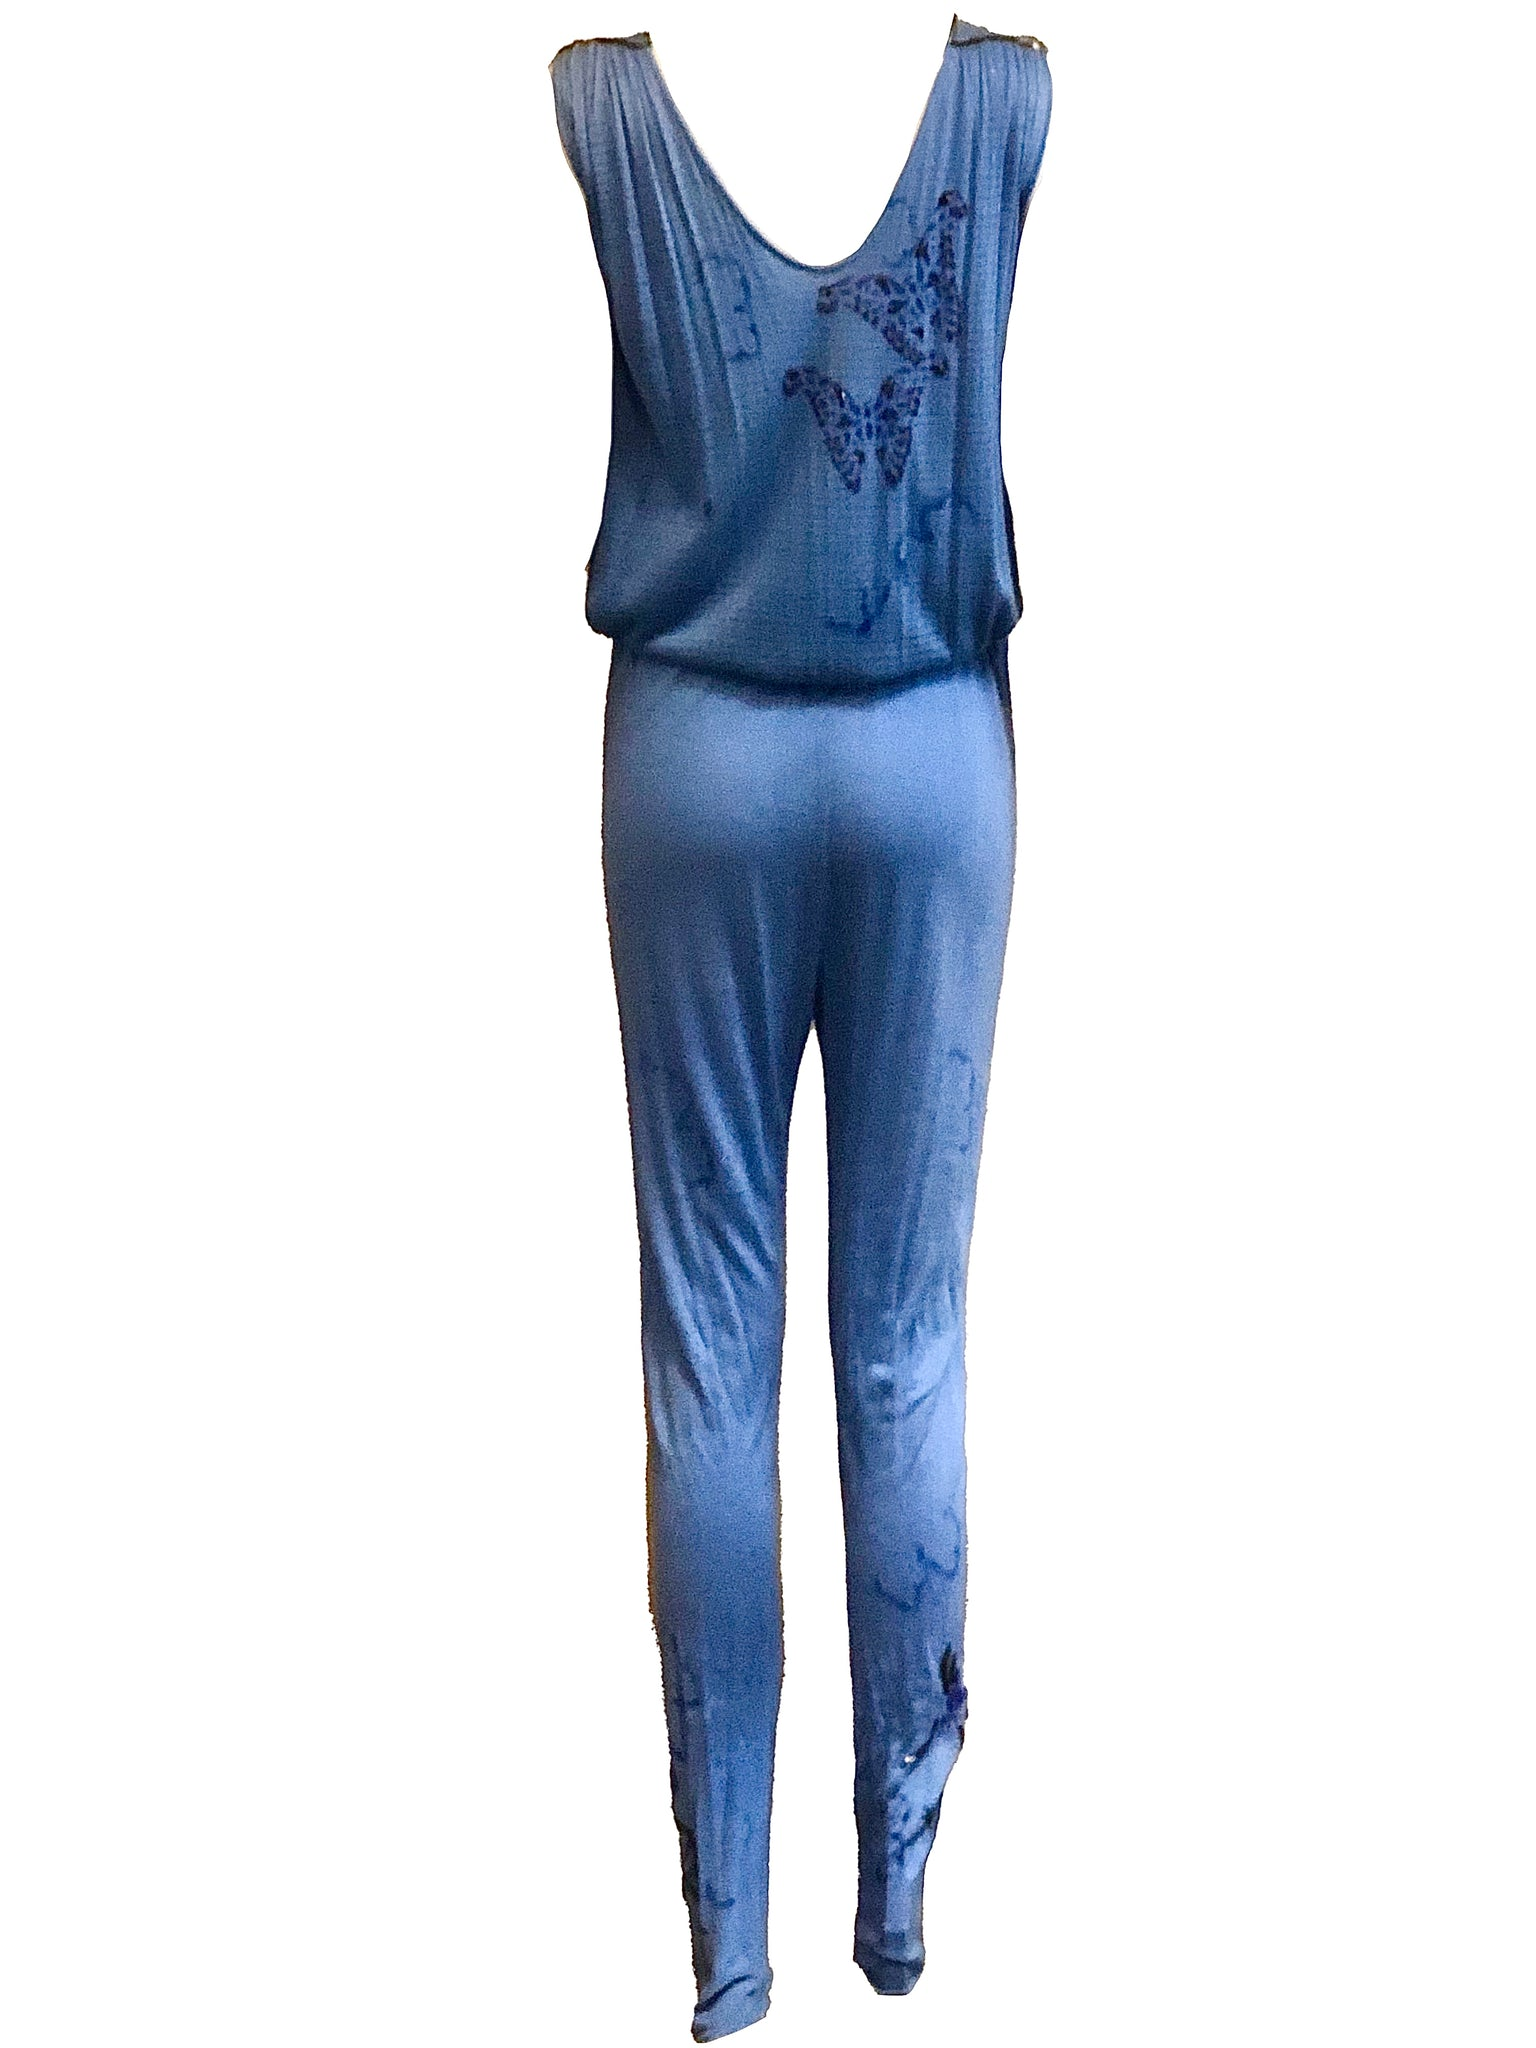 Suzy Creamcheese 70s Blue Jersey Airbrushed  Sexy Jumpsuit BACK 3 of 5